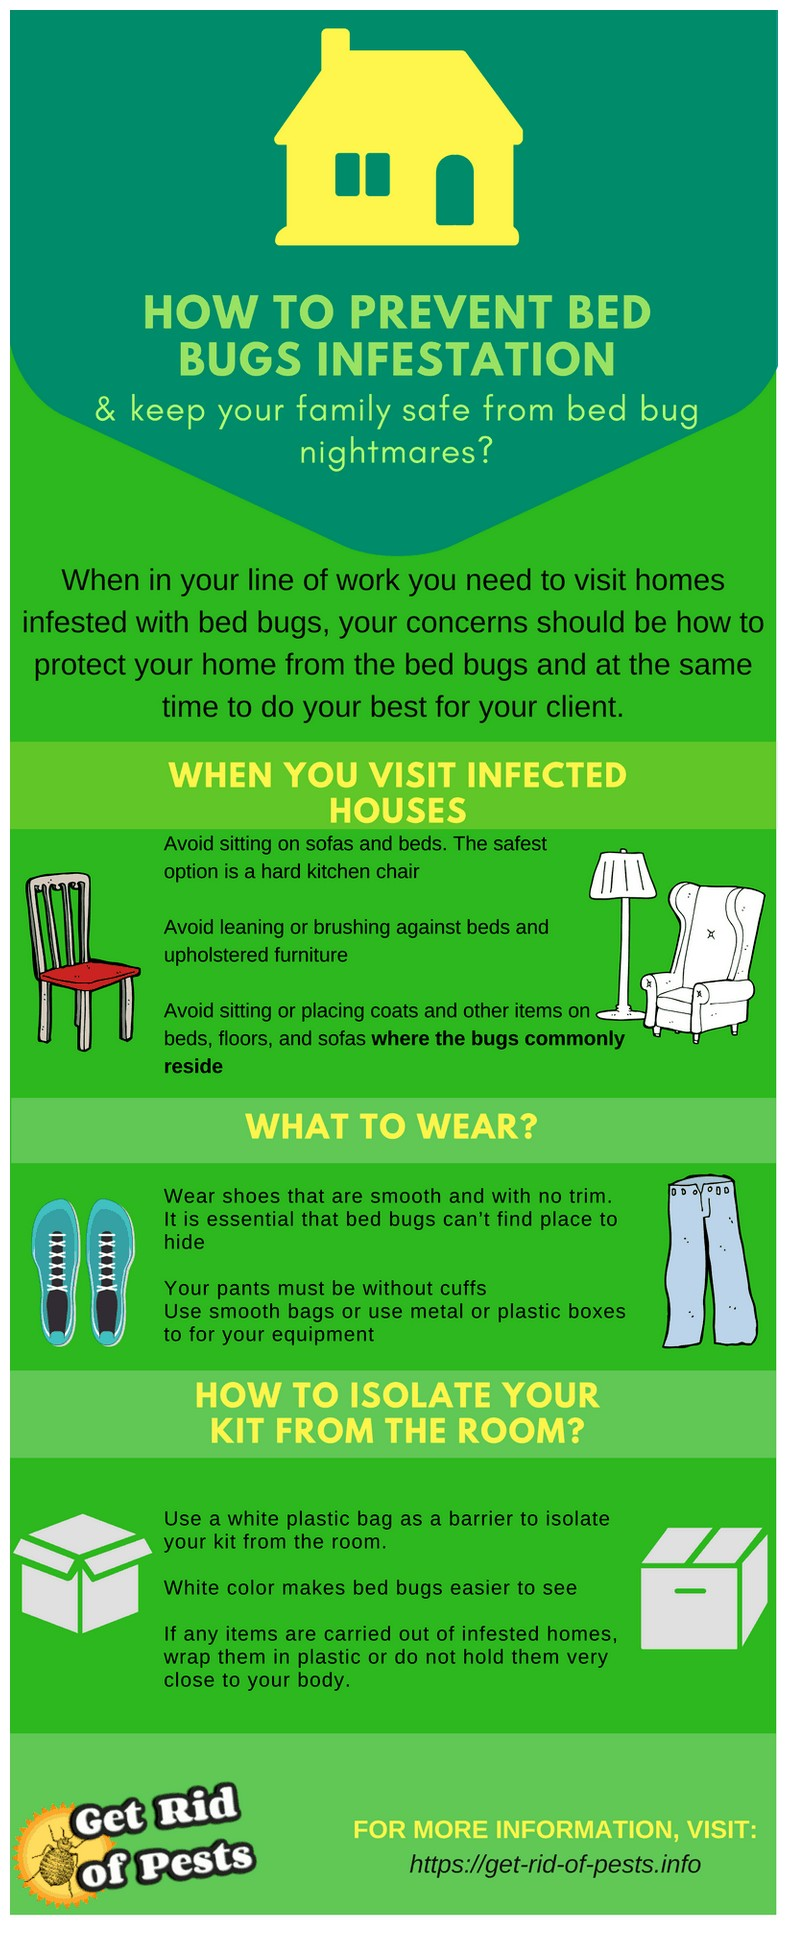 Can You Get Rid Of Bed Bugs In Your Home